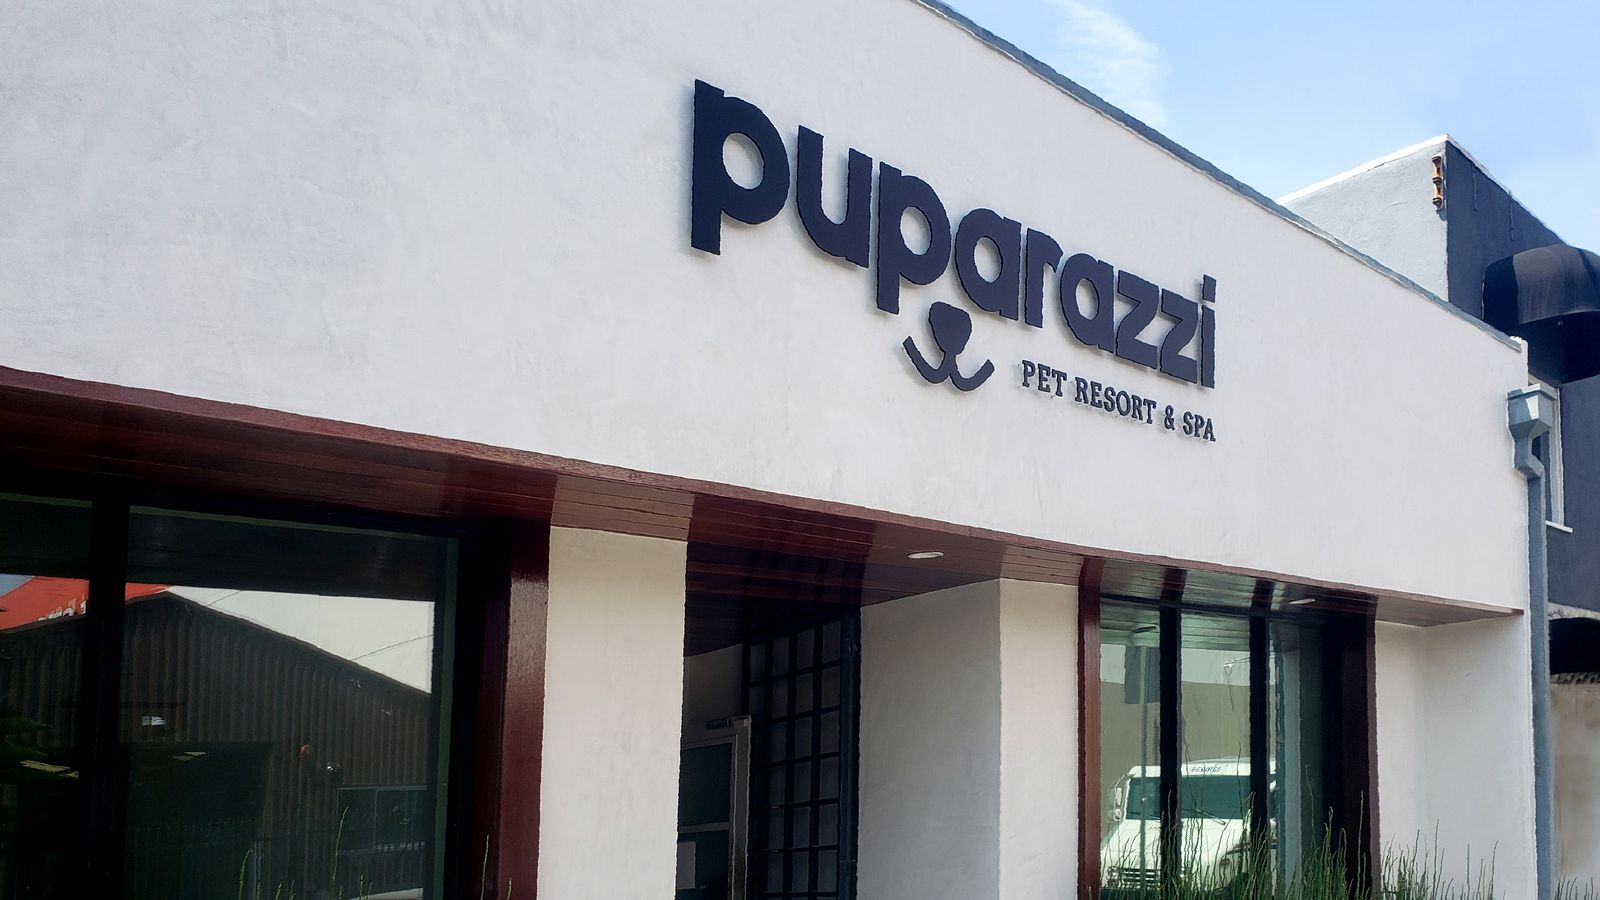 Puparazzi Pet Resort & Spa 3d metal letters and logo sign made of aluminum and pin-mounted